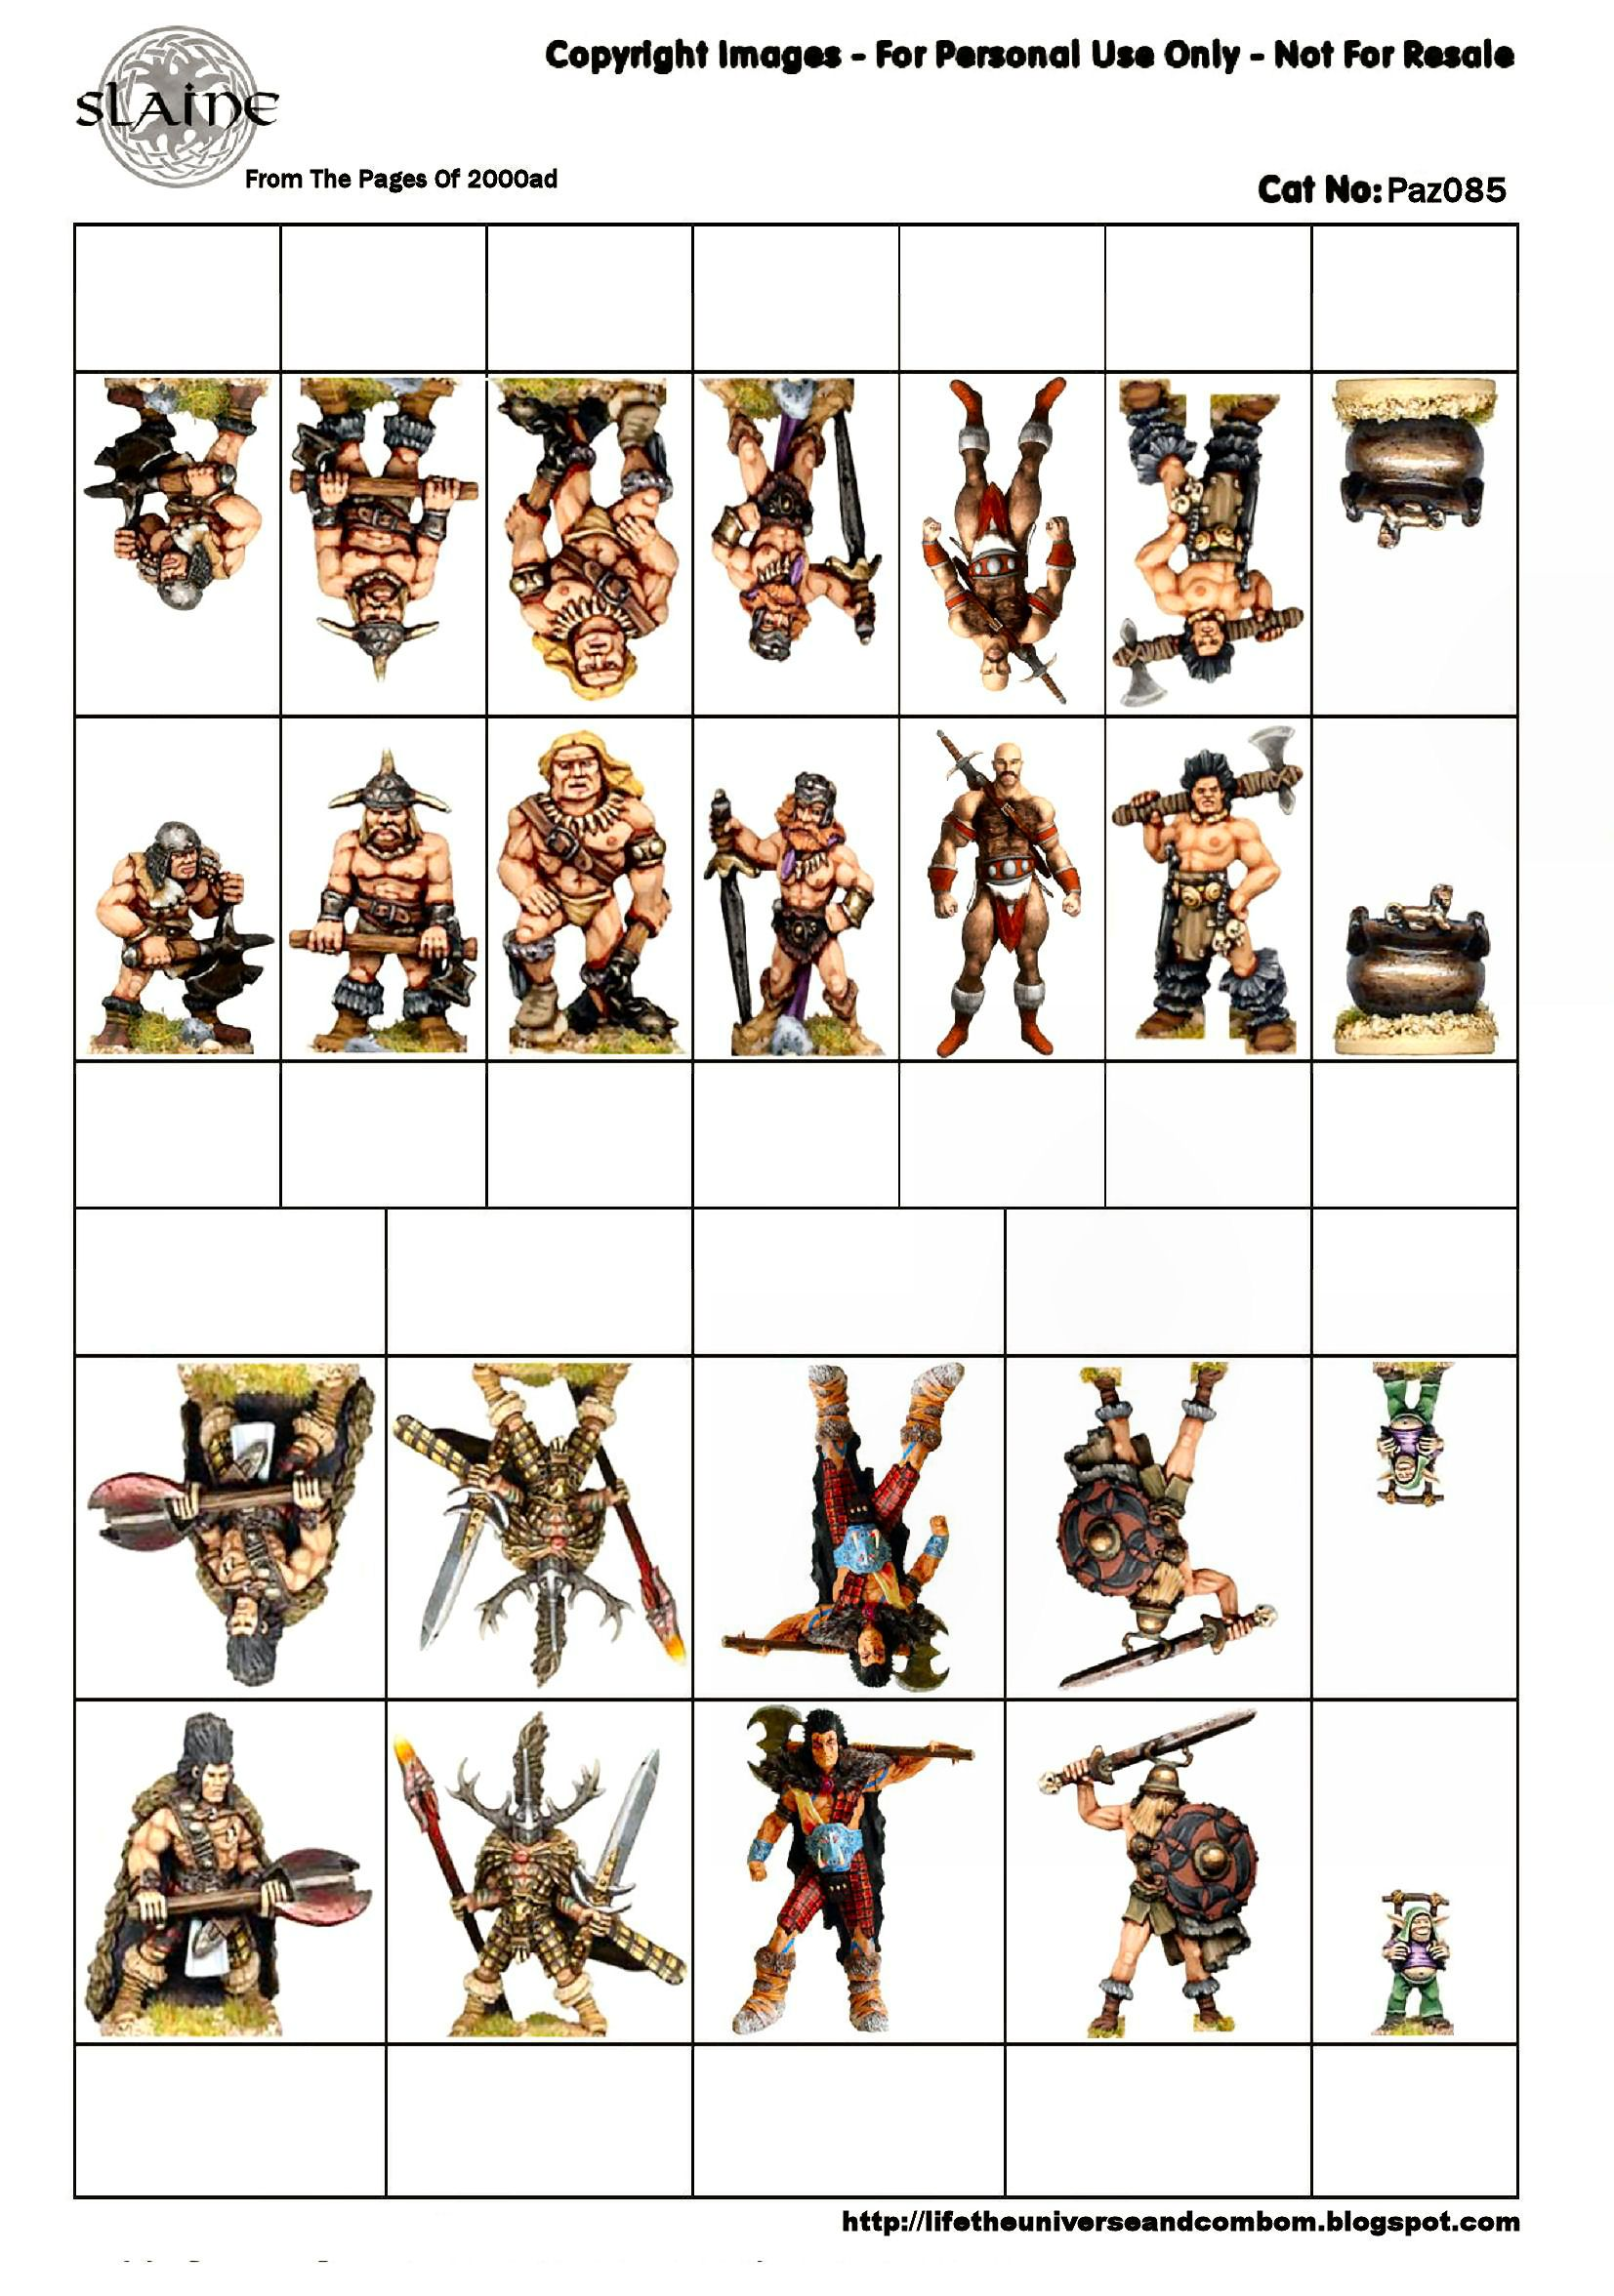 image relating to Dungeons and Dragons Tiles Printable identify Papercraft Tabletop RPG Statistics via Pazza - Merely Print And